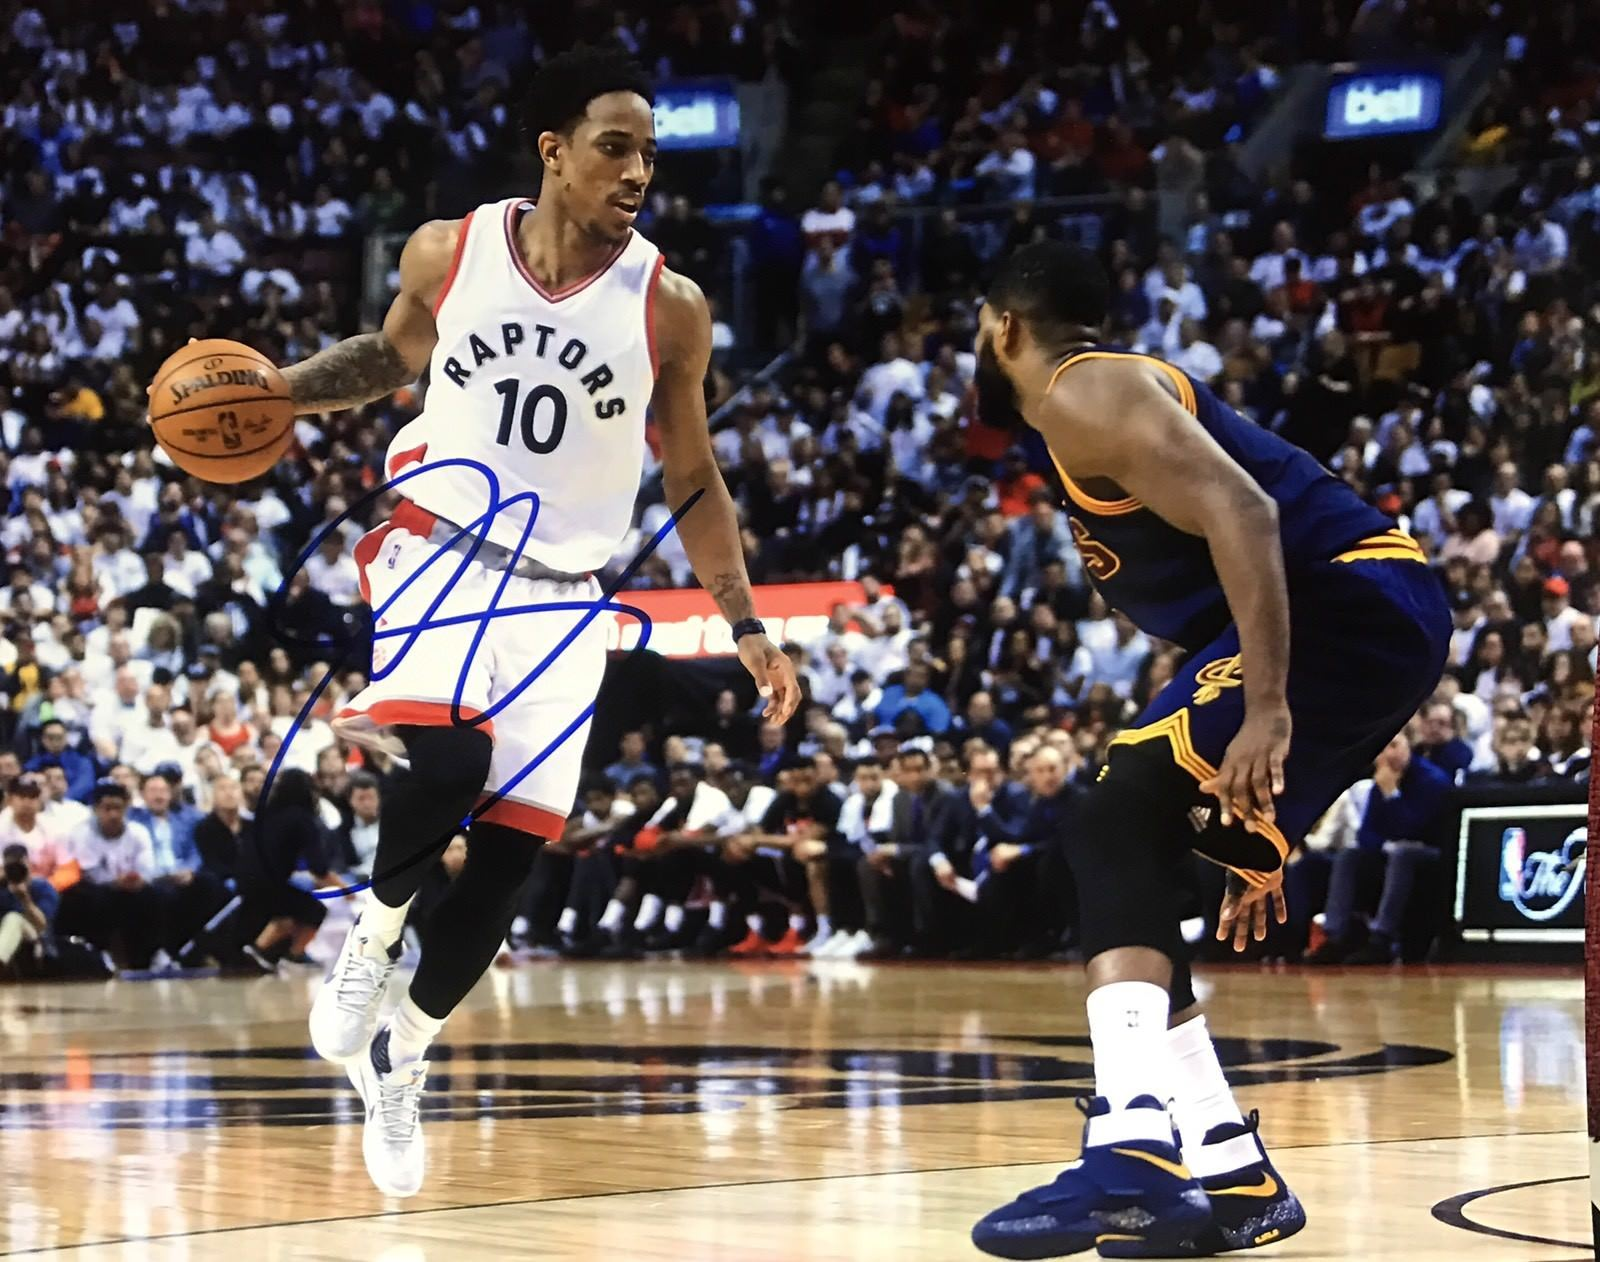 Demar Derozen Authentic Signed 8x10 Photo - ALL STAR TORONTO RAPTORS - Top Notch Signatures LLC